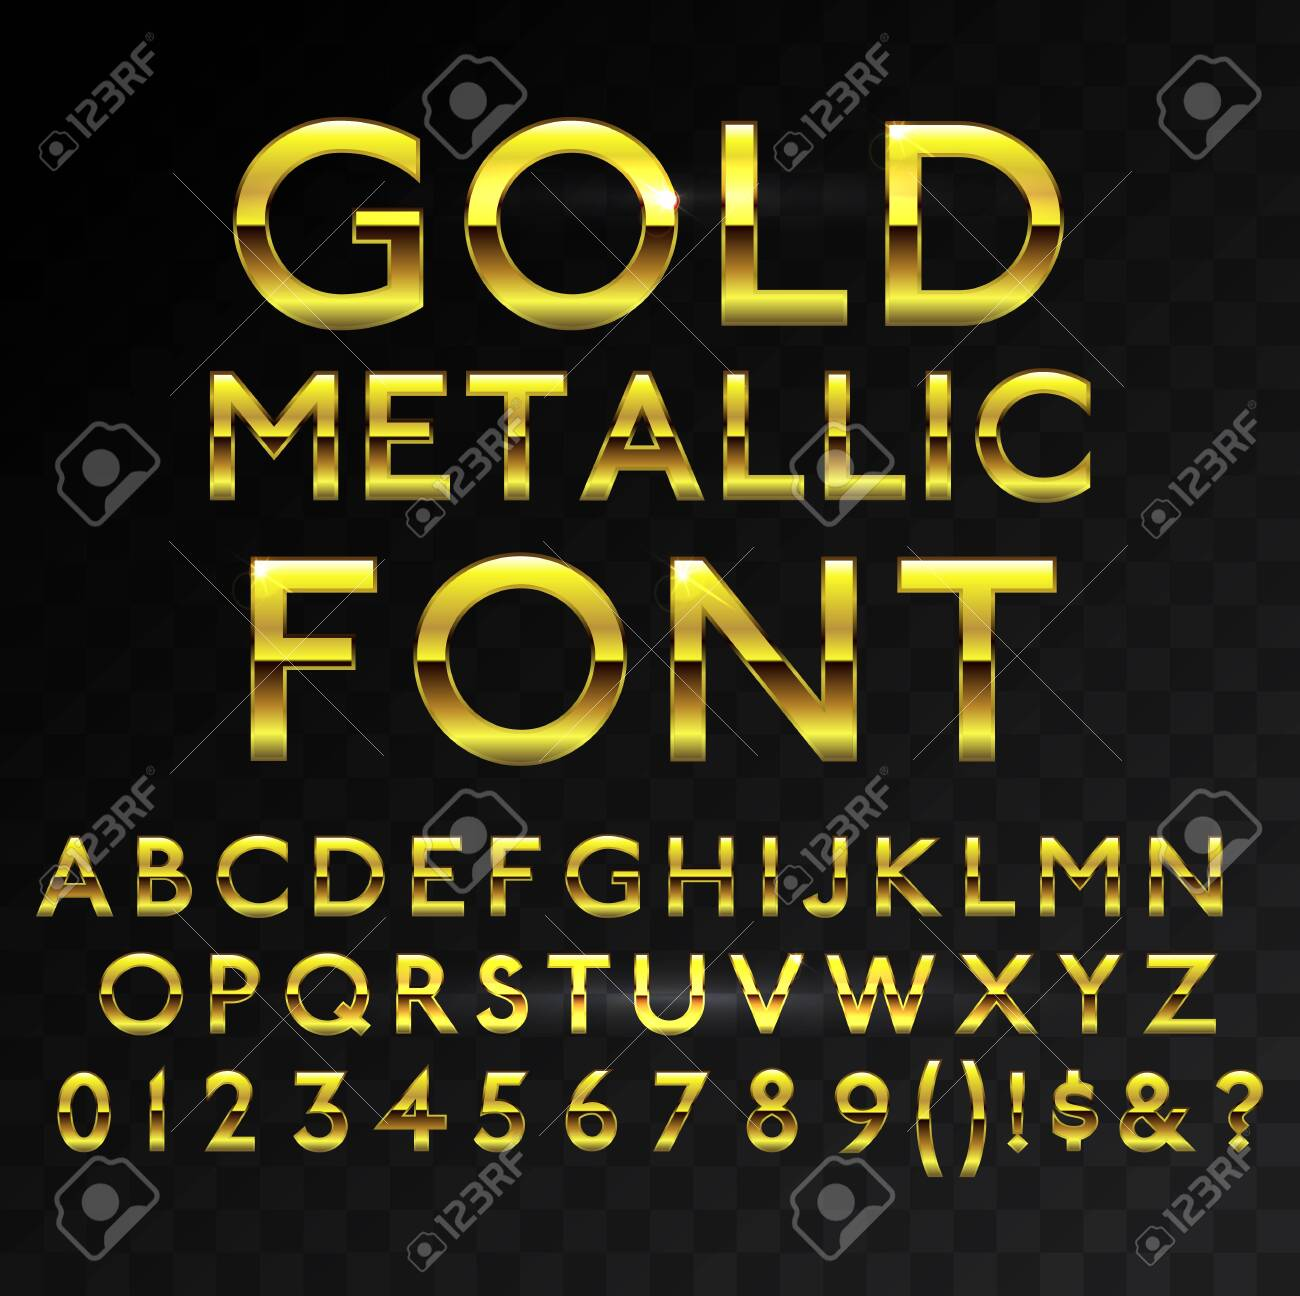 Gold metallic glossy vector font or gold style alphabet. Yellow metal typeface. Metallic golden abc, alphabet typographic luxury premium deluxe text effect isolated in transparent black background - 147986193